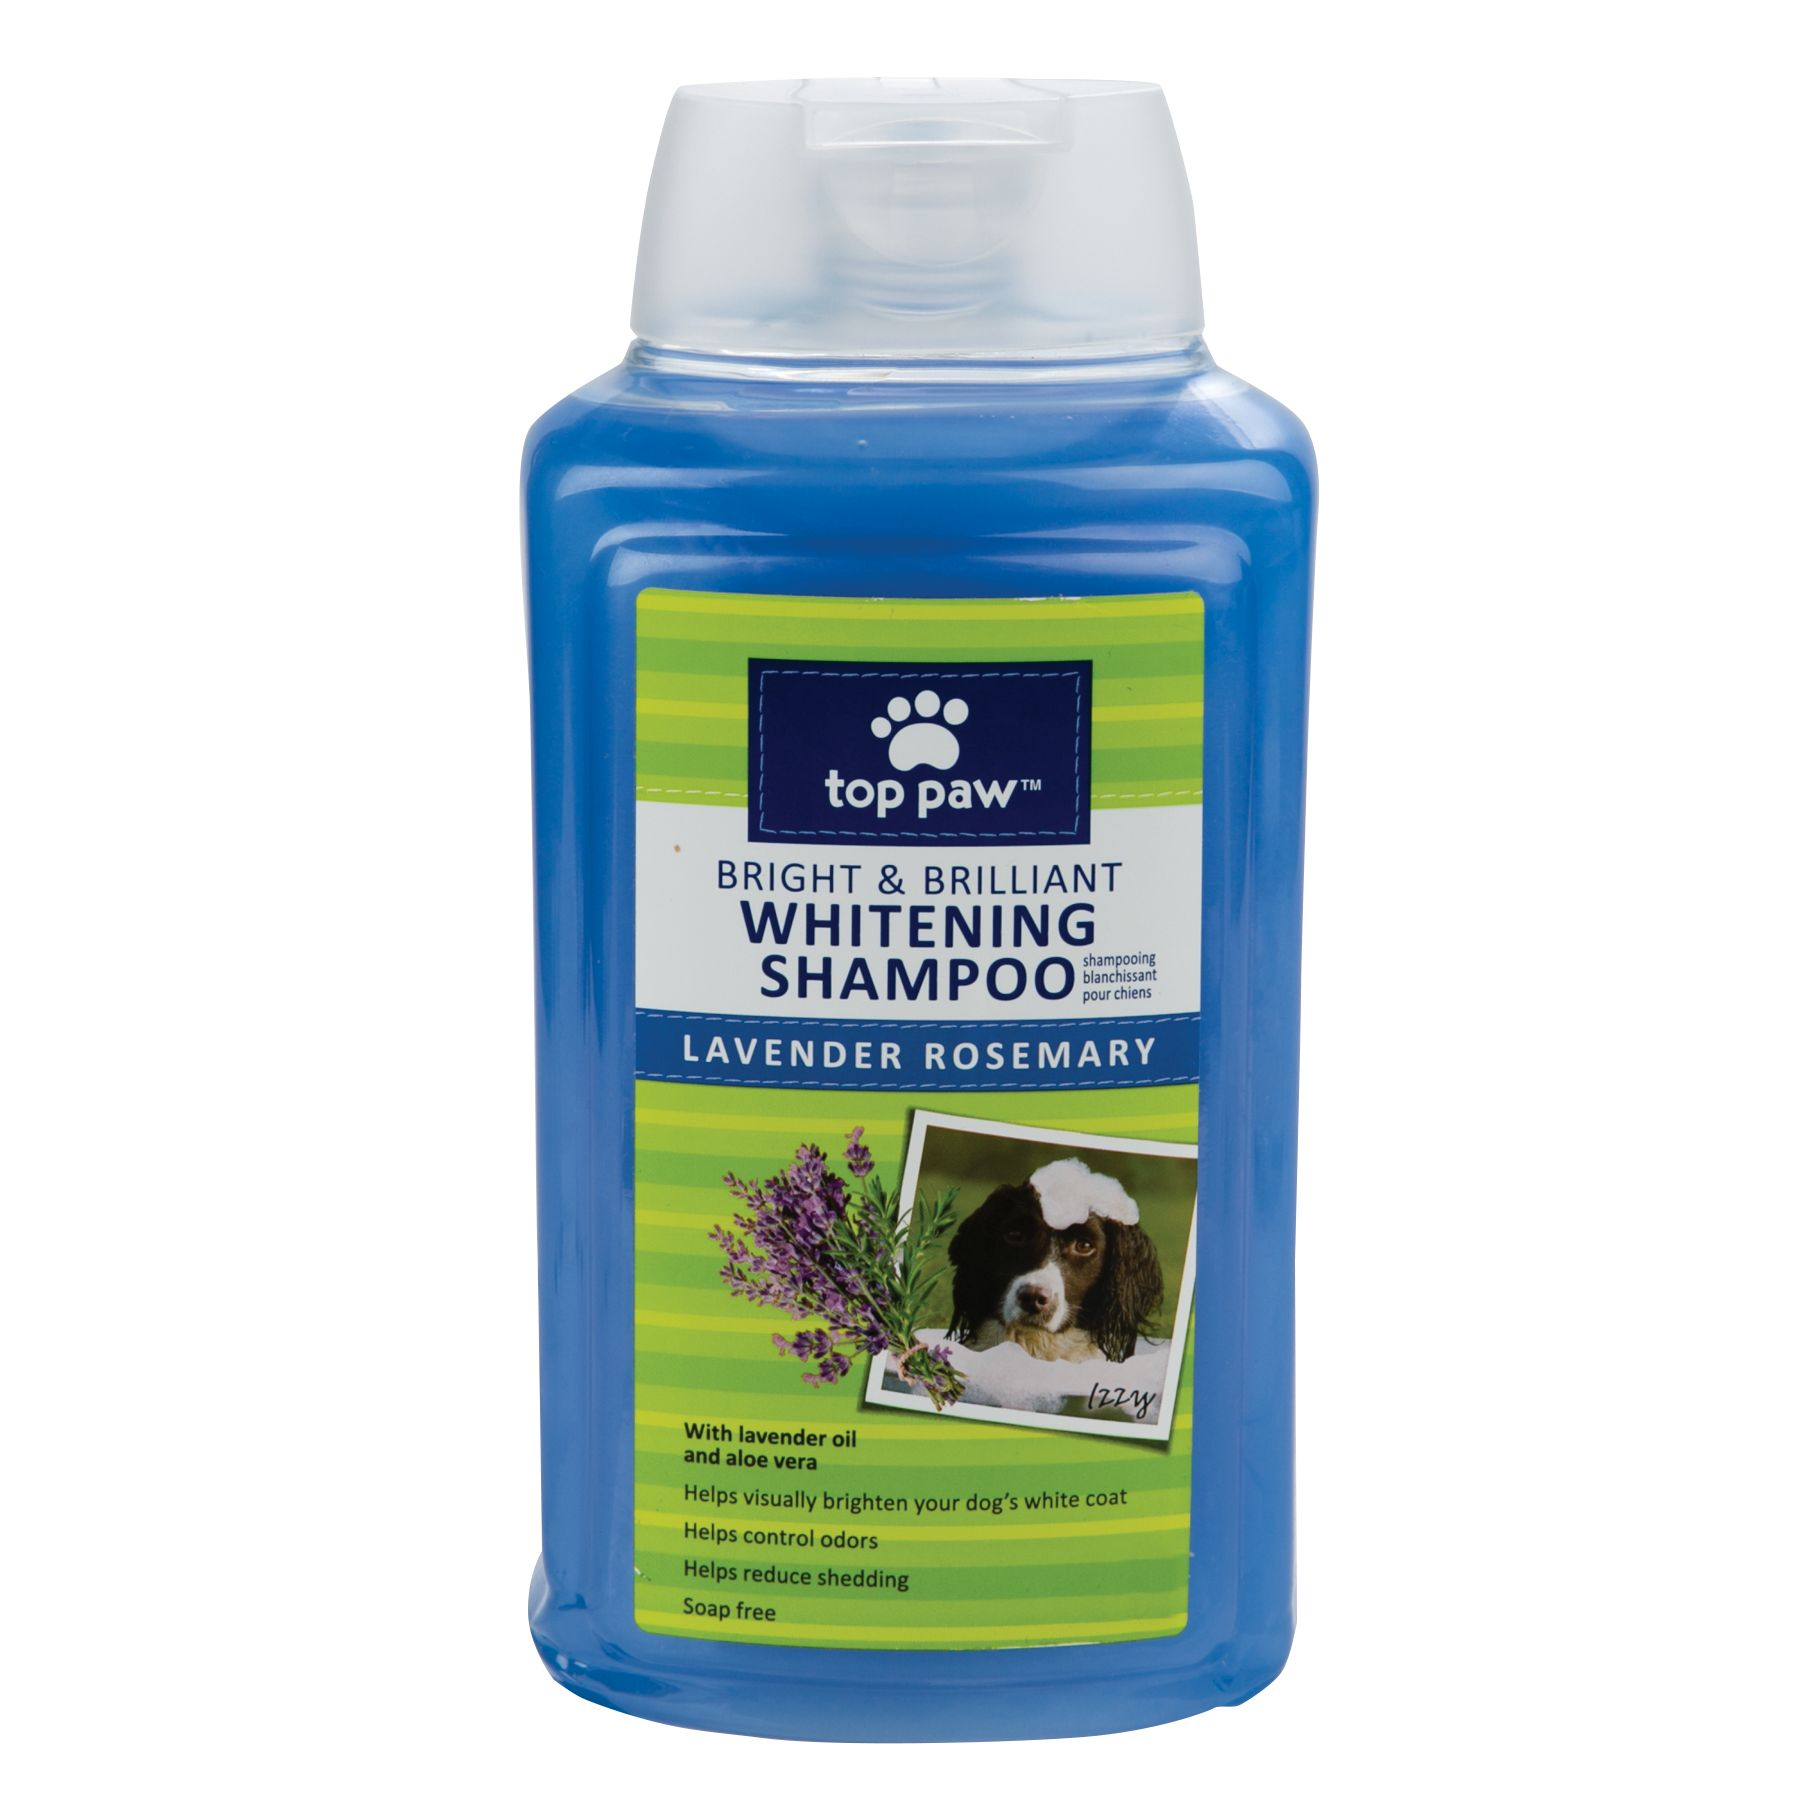 Top Paw, Bright and Brilliant Whitening Dog Shampoo - Lavender Rosemary Scent size: 17 Fl Oz 5147838